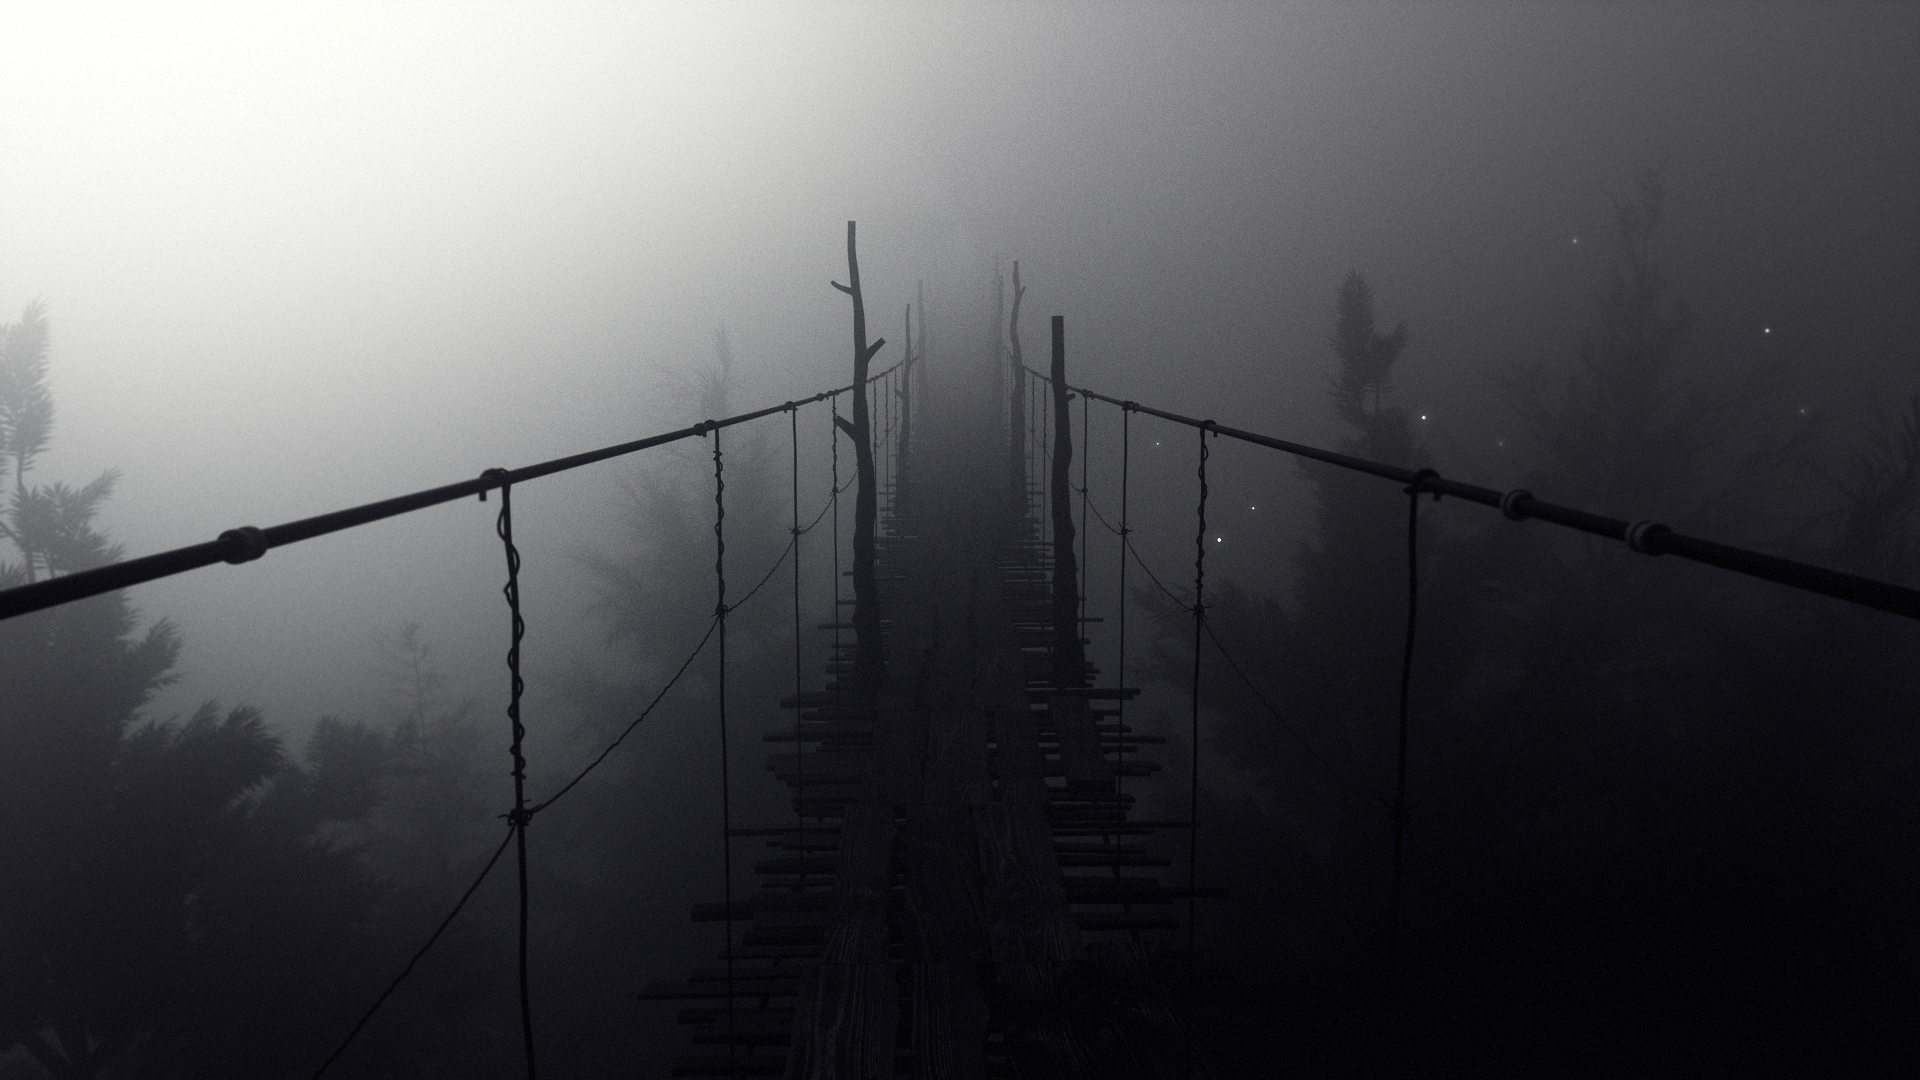 Volume Rendering with Octane Render for Cinema 4D - Foggy Bridge #1